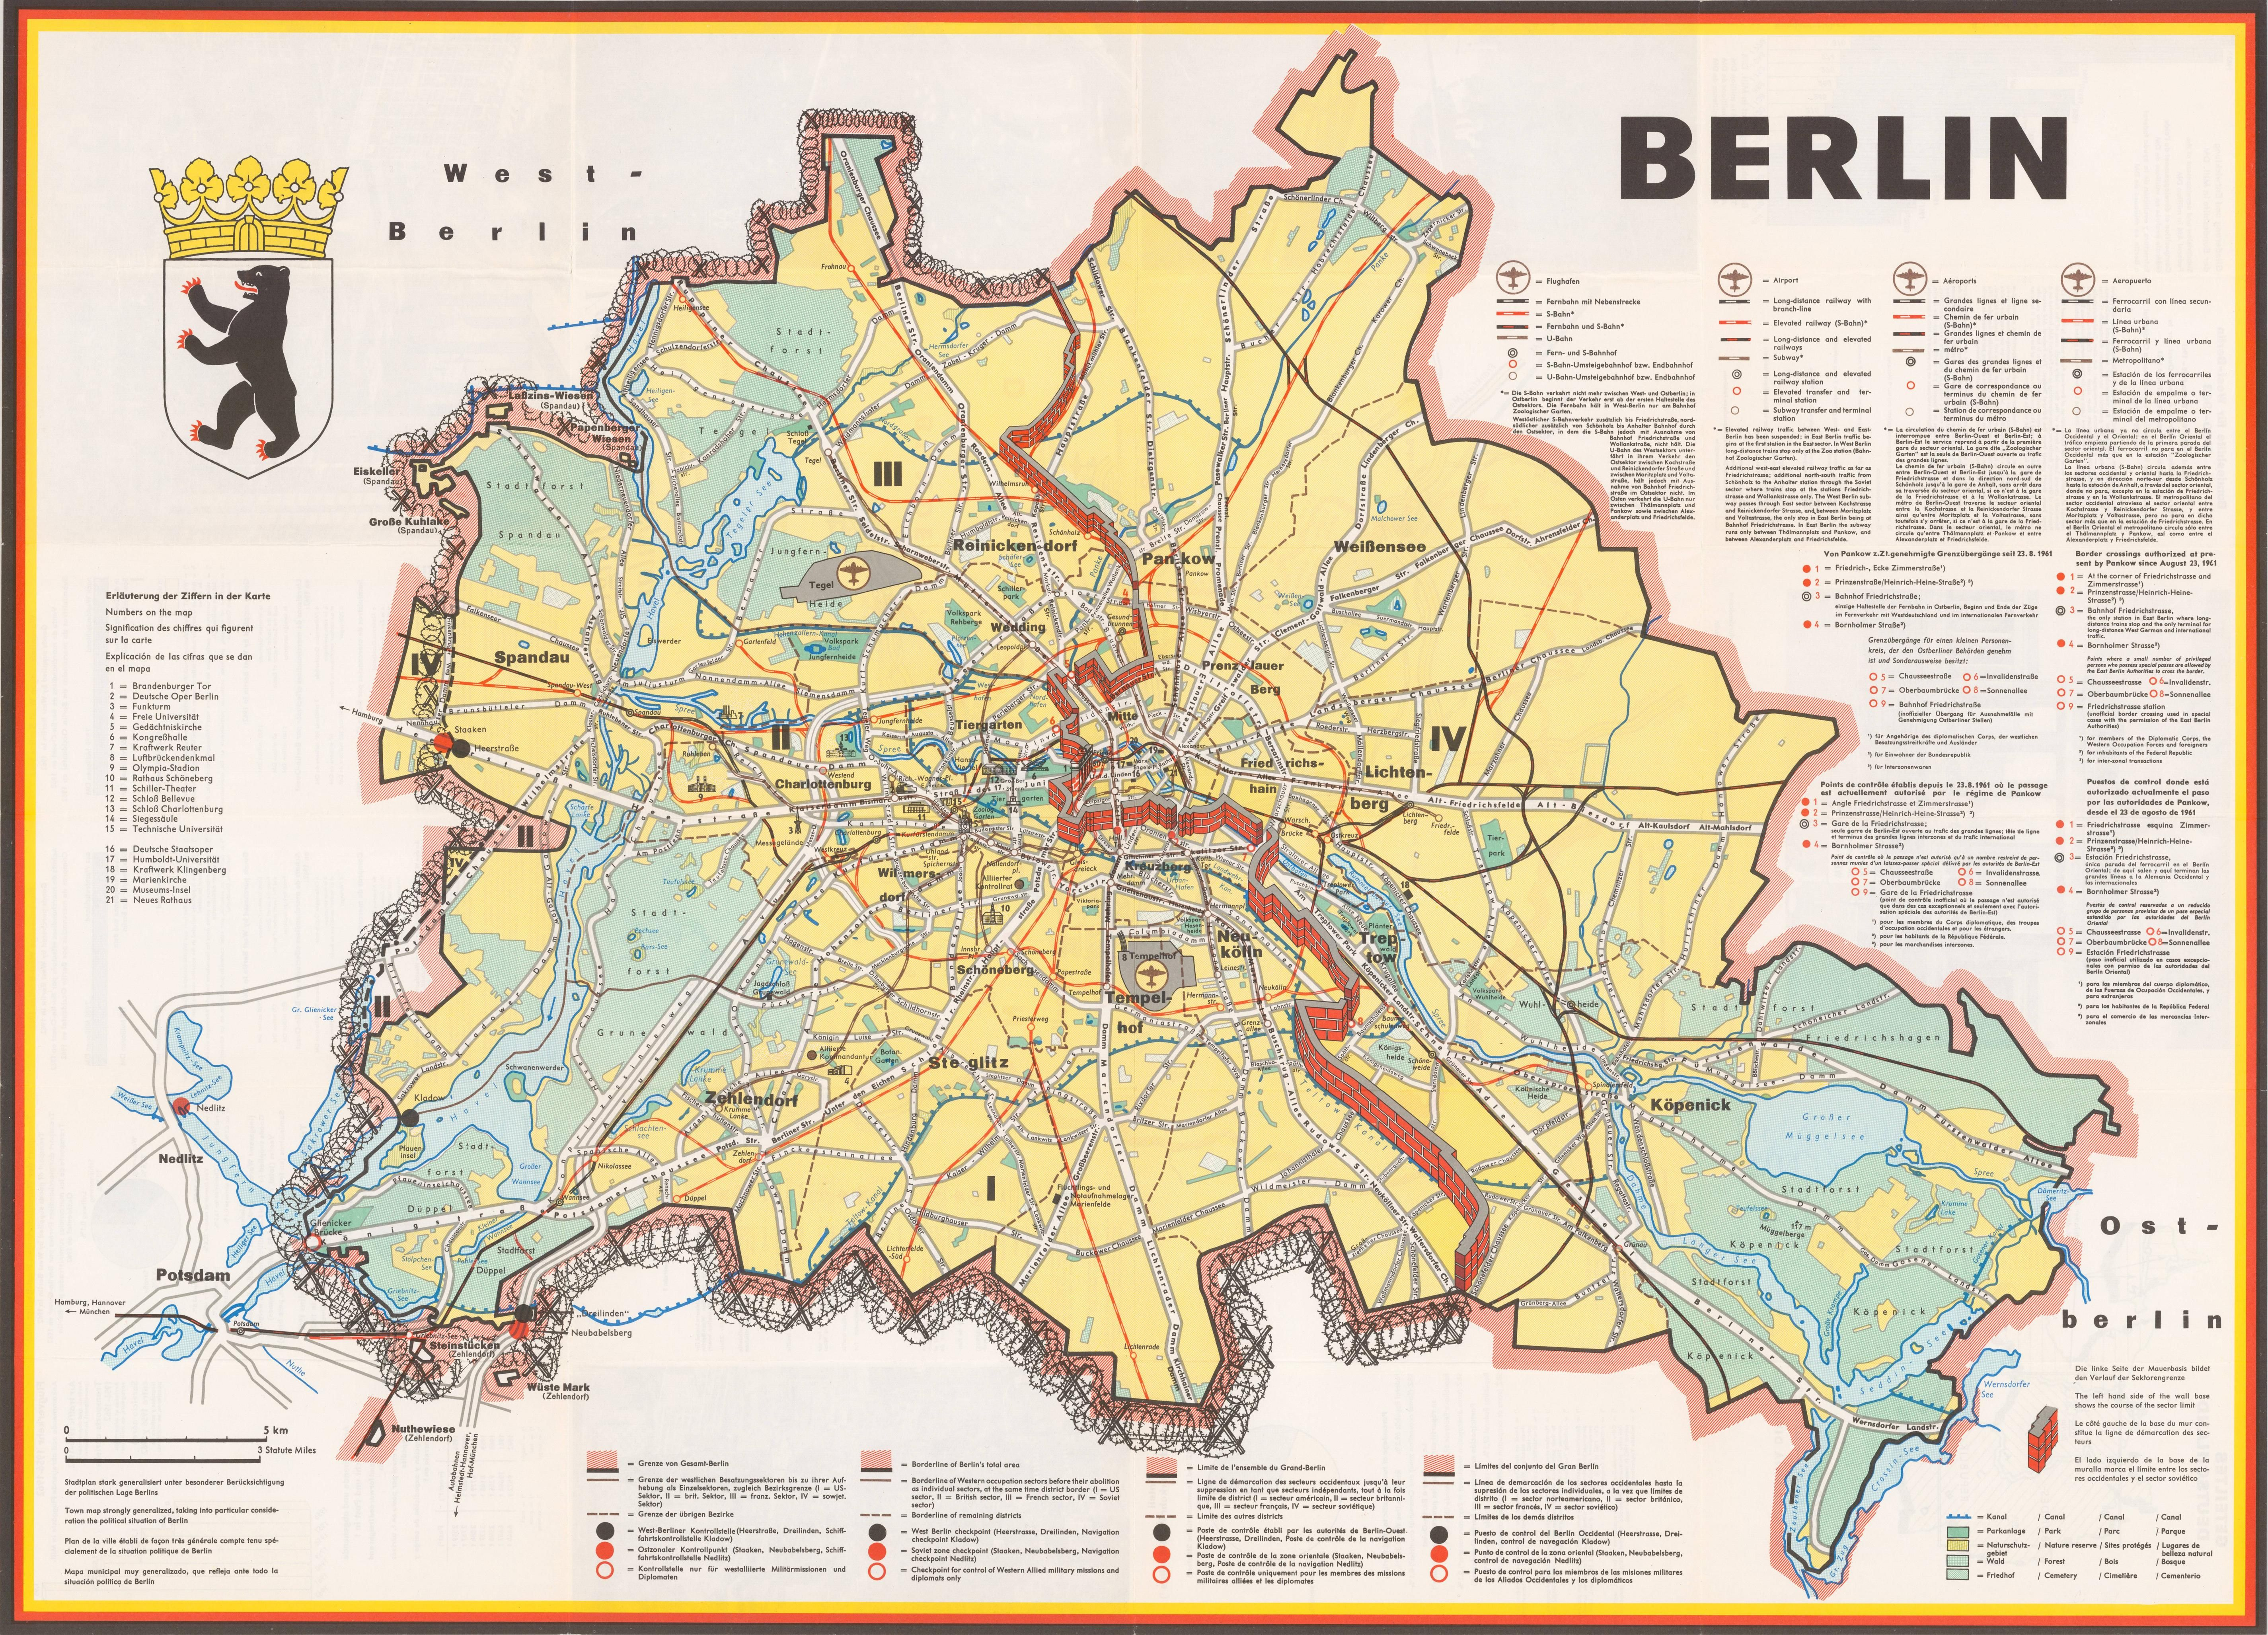 Berlin a cold war map showing the Berlin Wall as a bricked up barrier